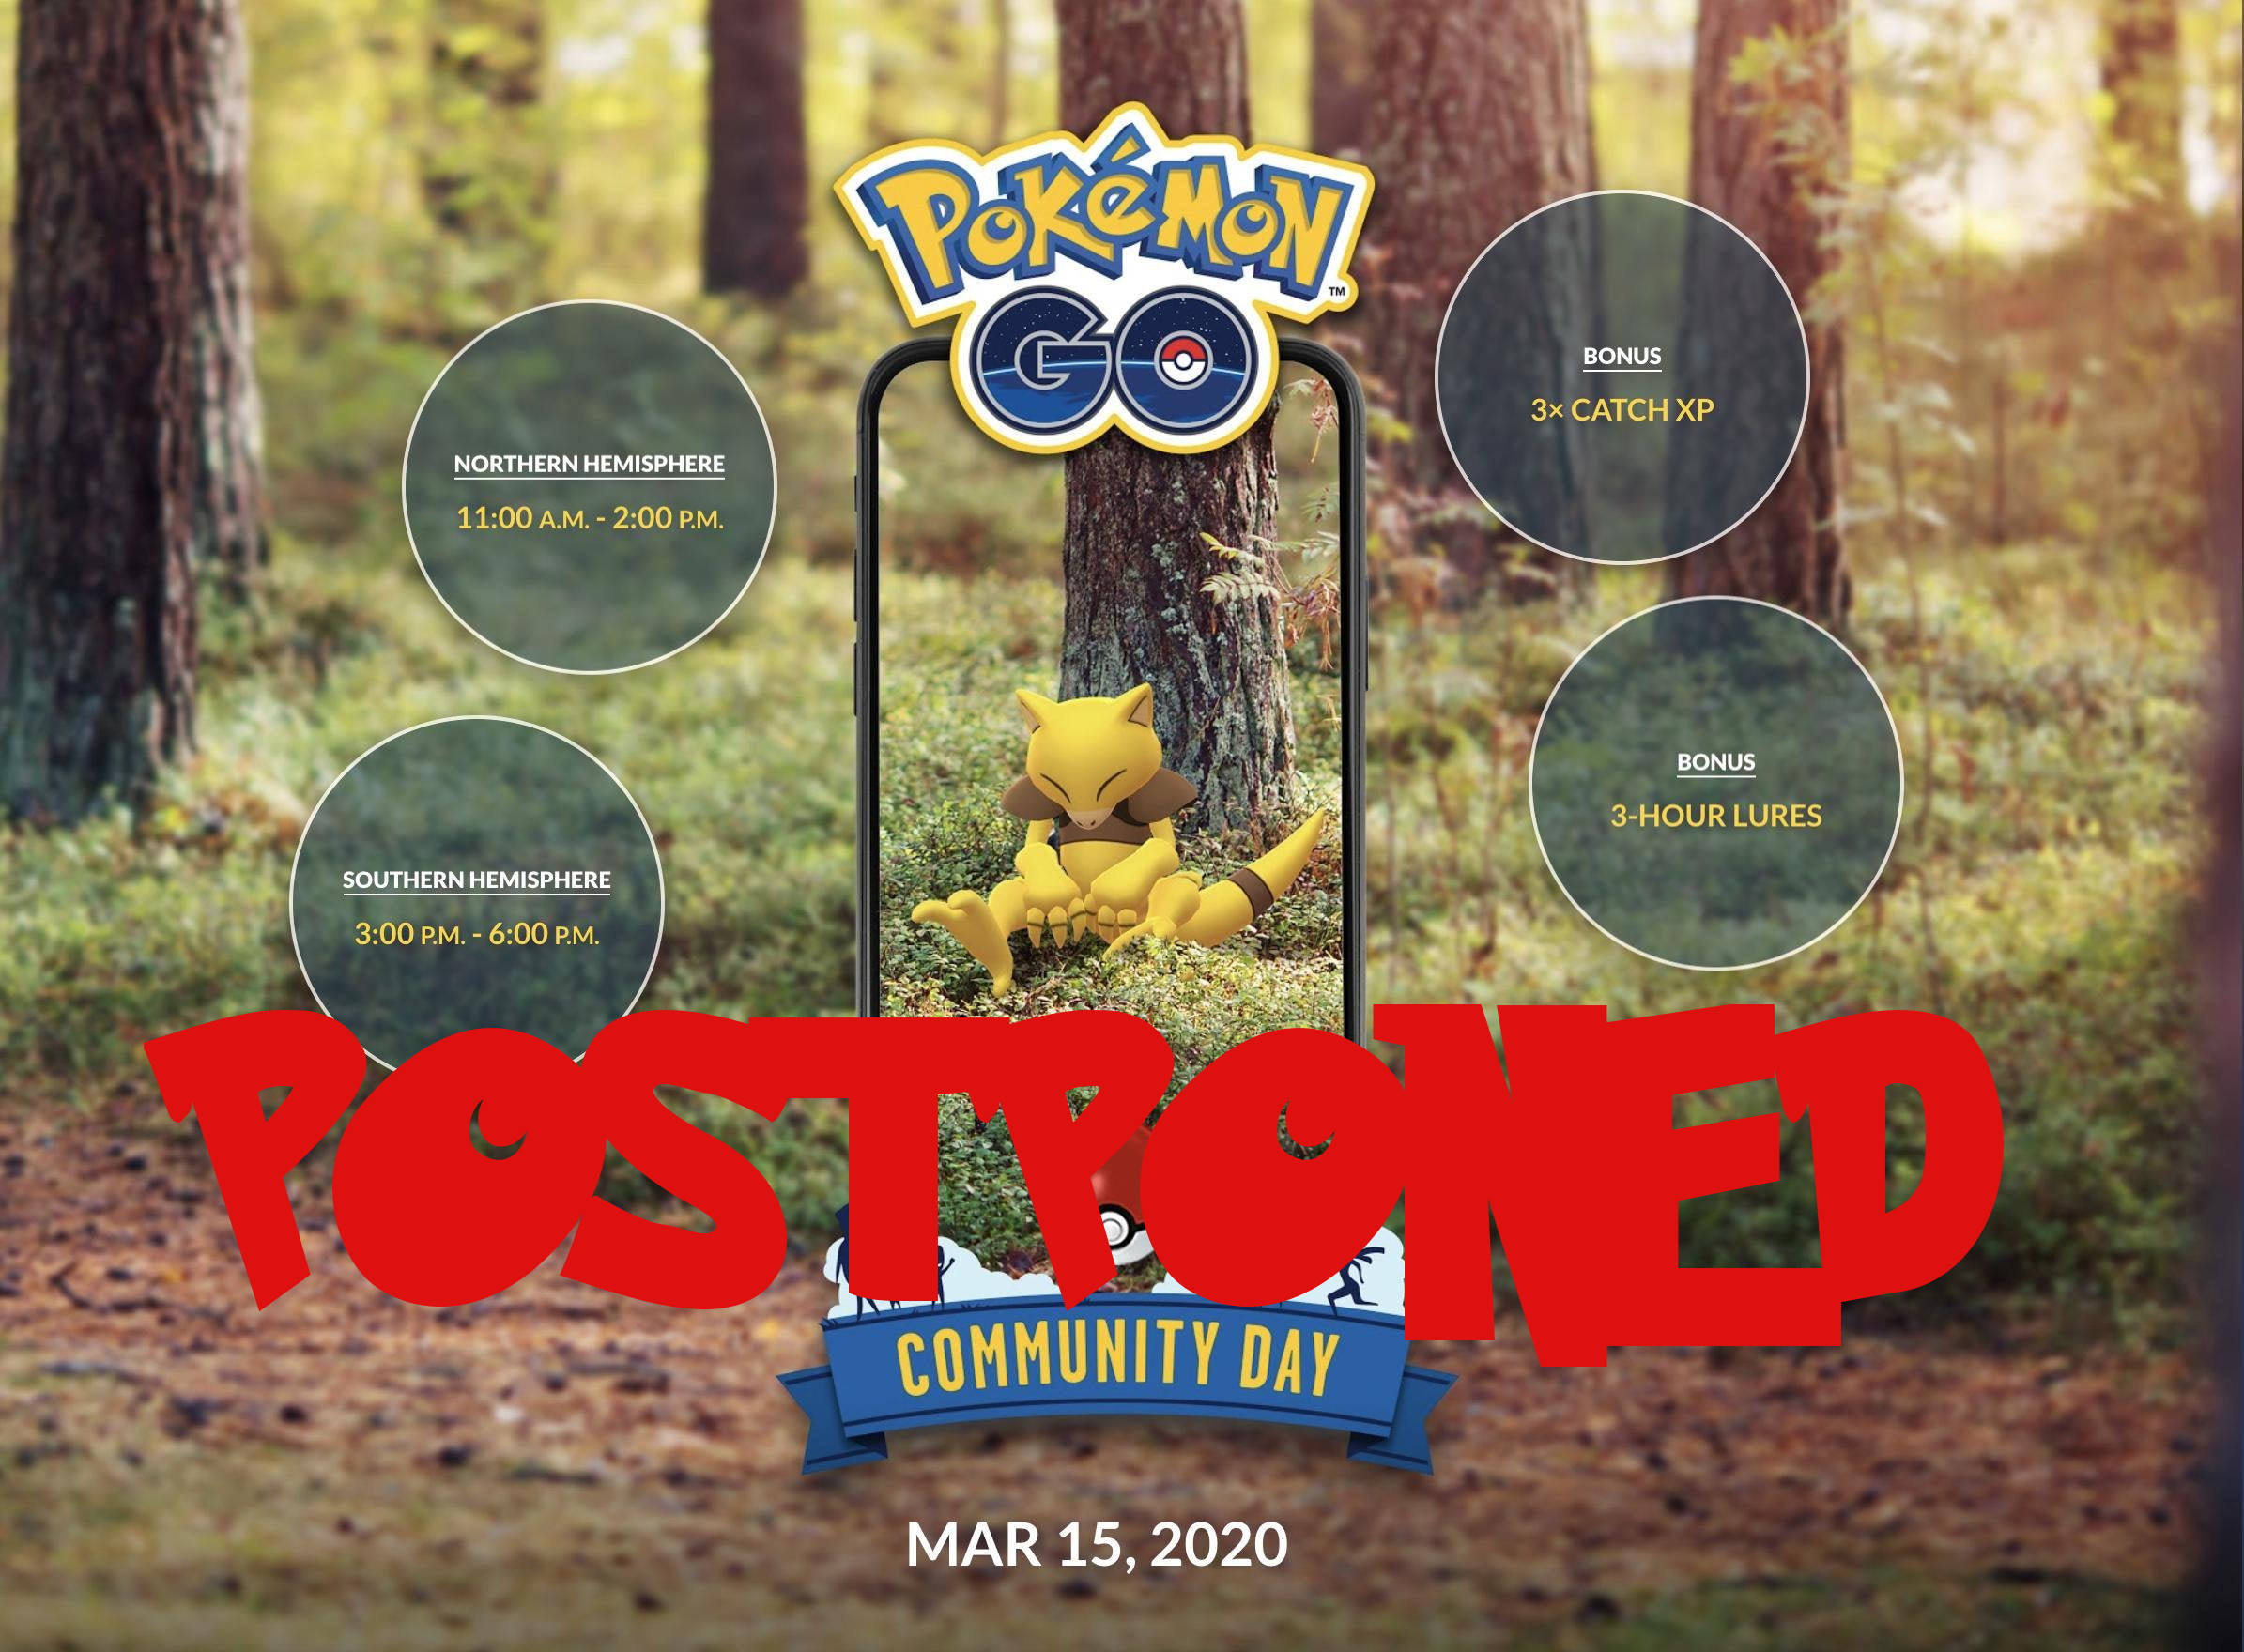 Pokemon Go is changing to keep players safe amidst Coronavirus outbreak